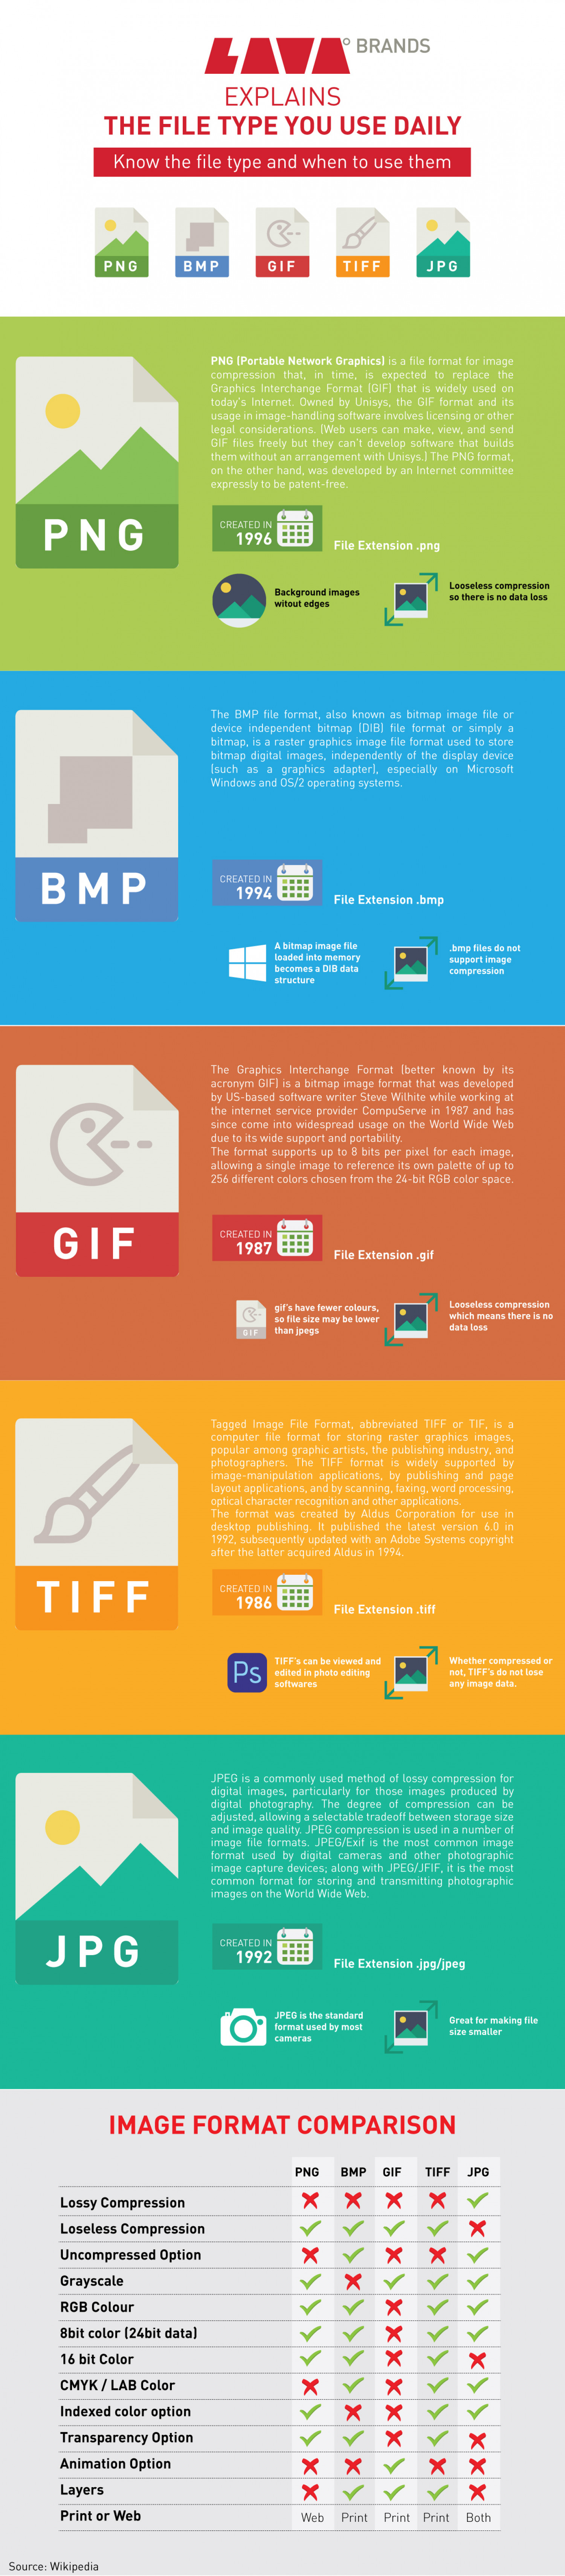 """LAVA Brands EXPLAINS ~ """" THE FILE TYPE YOU USE DAILY """" Infographic"""